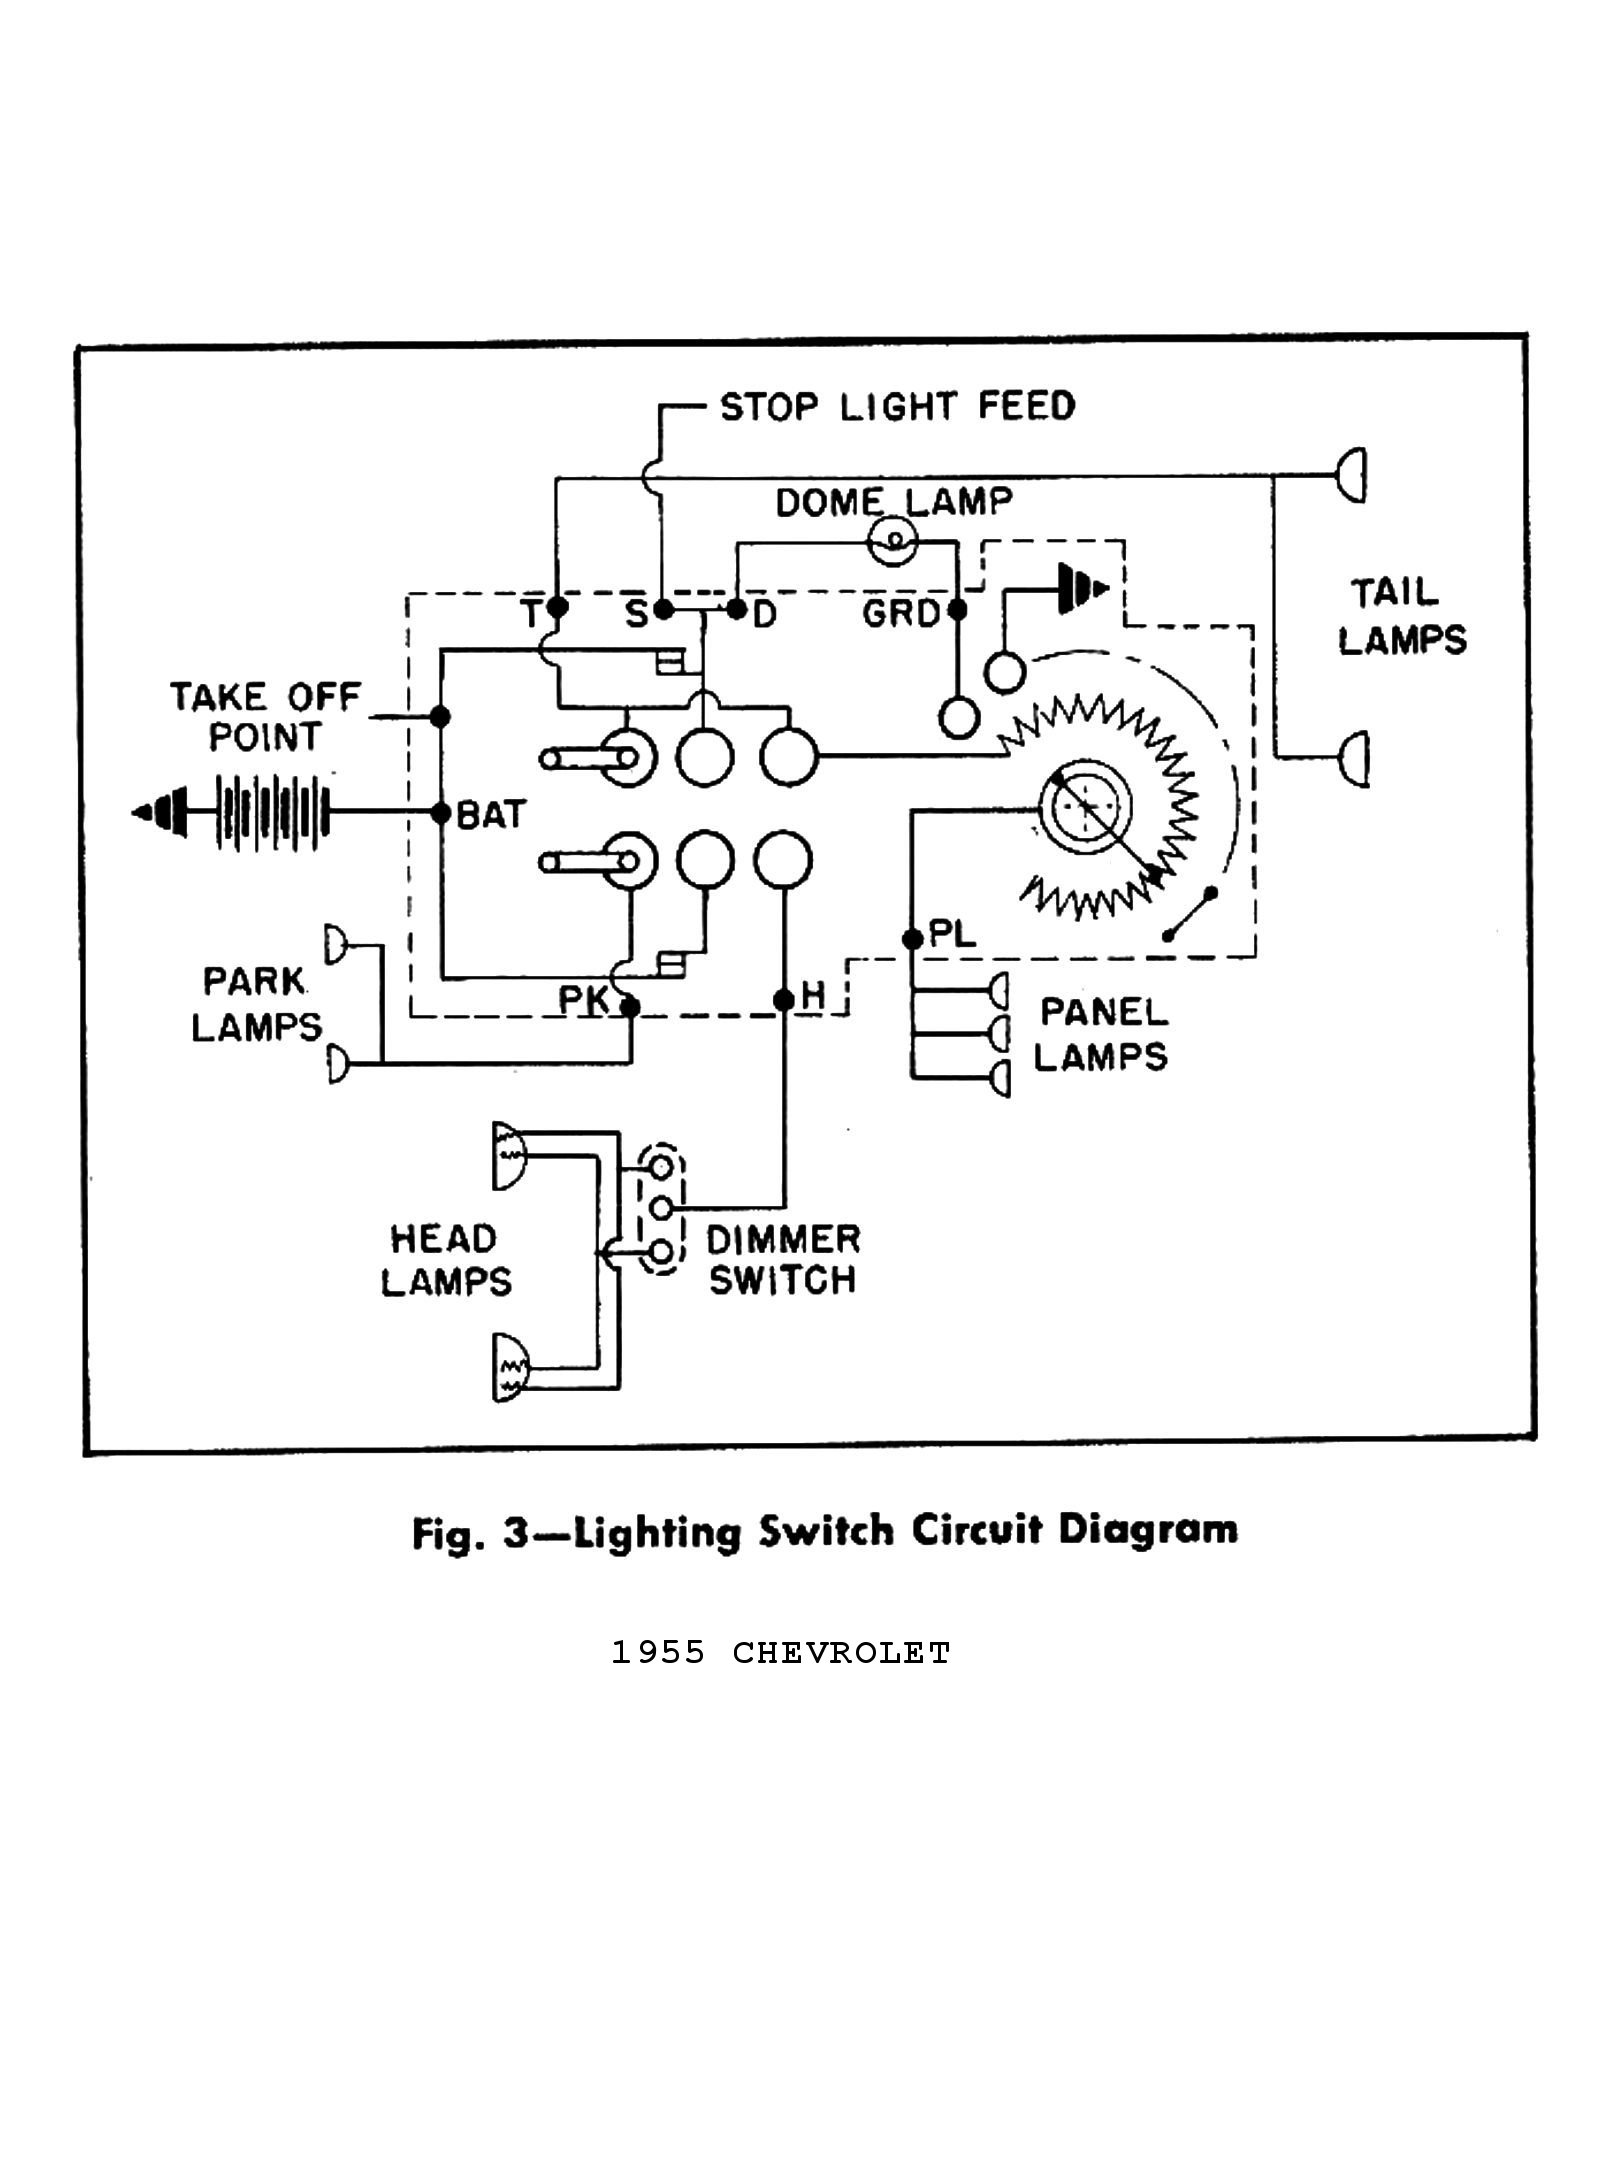 55ctsm1203 wiring diagram 1955 chevy ignition switch the wiring diagram 1954 chevrolet wiring diagram at edmiracle.co